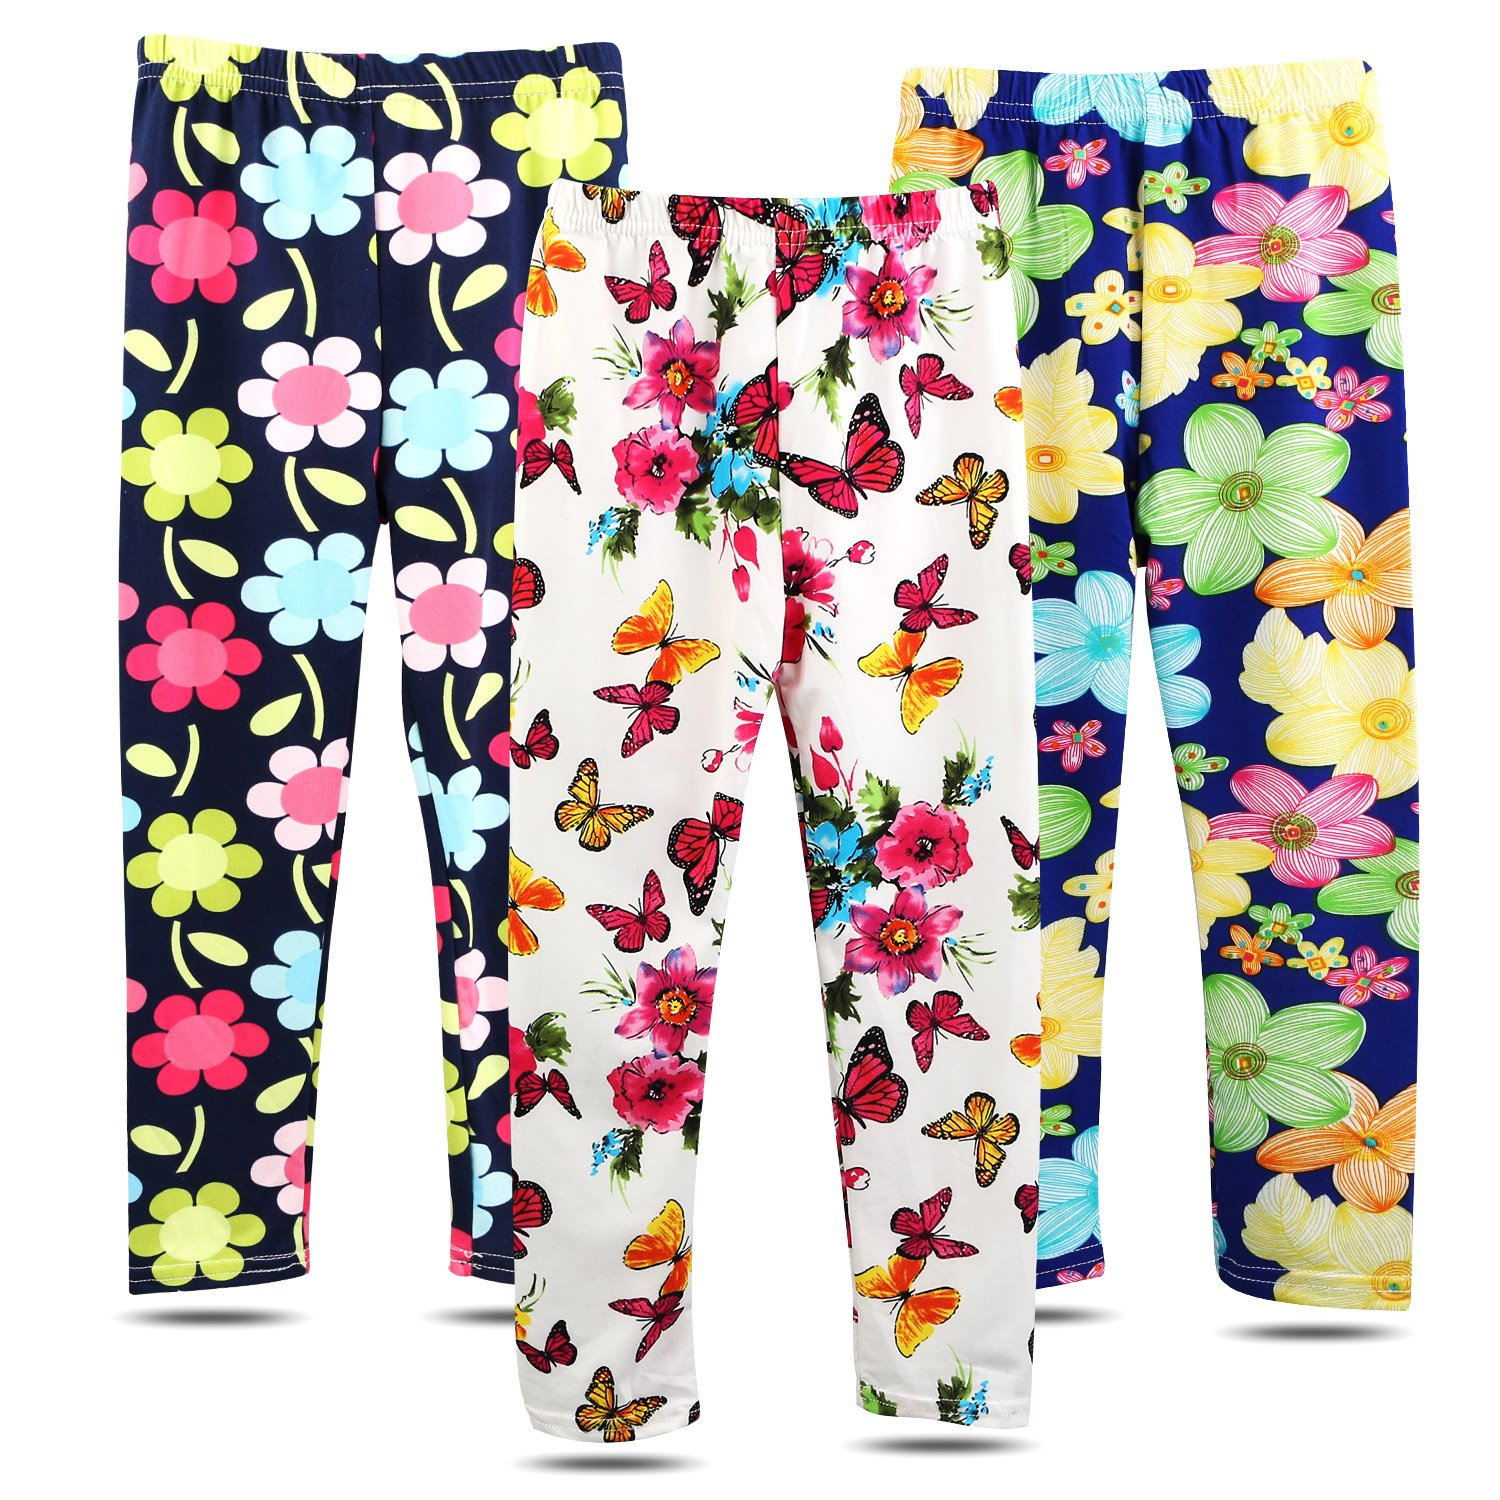 BOOPH 3 Pack Girls Pants Soft Stretchy Baby Toddler Girl Legging Flower Butterfly Printing Kids Long Pant 6-7 Year